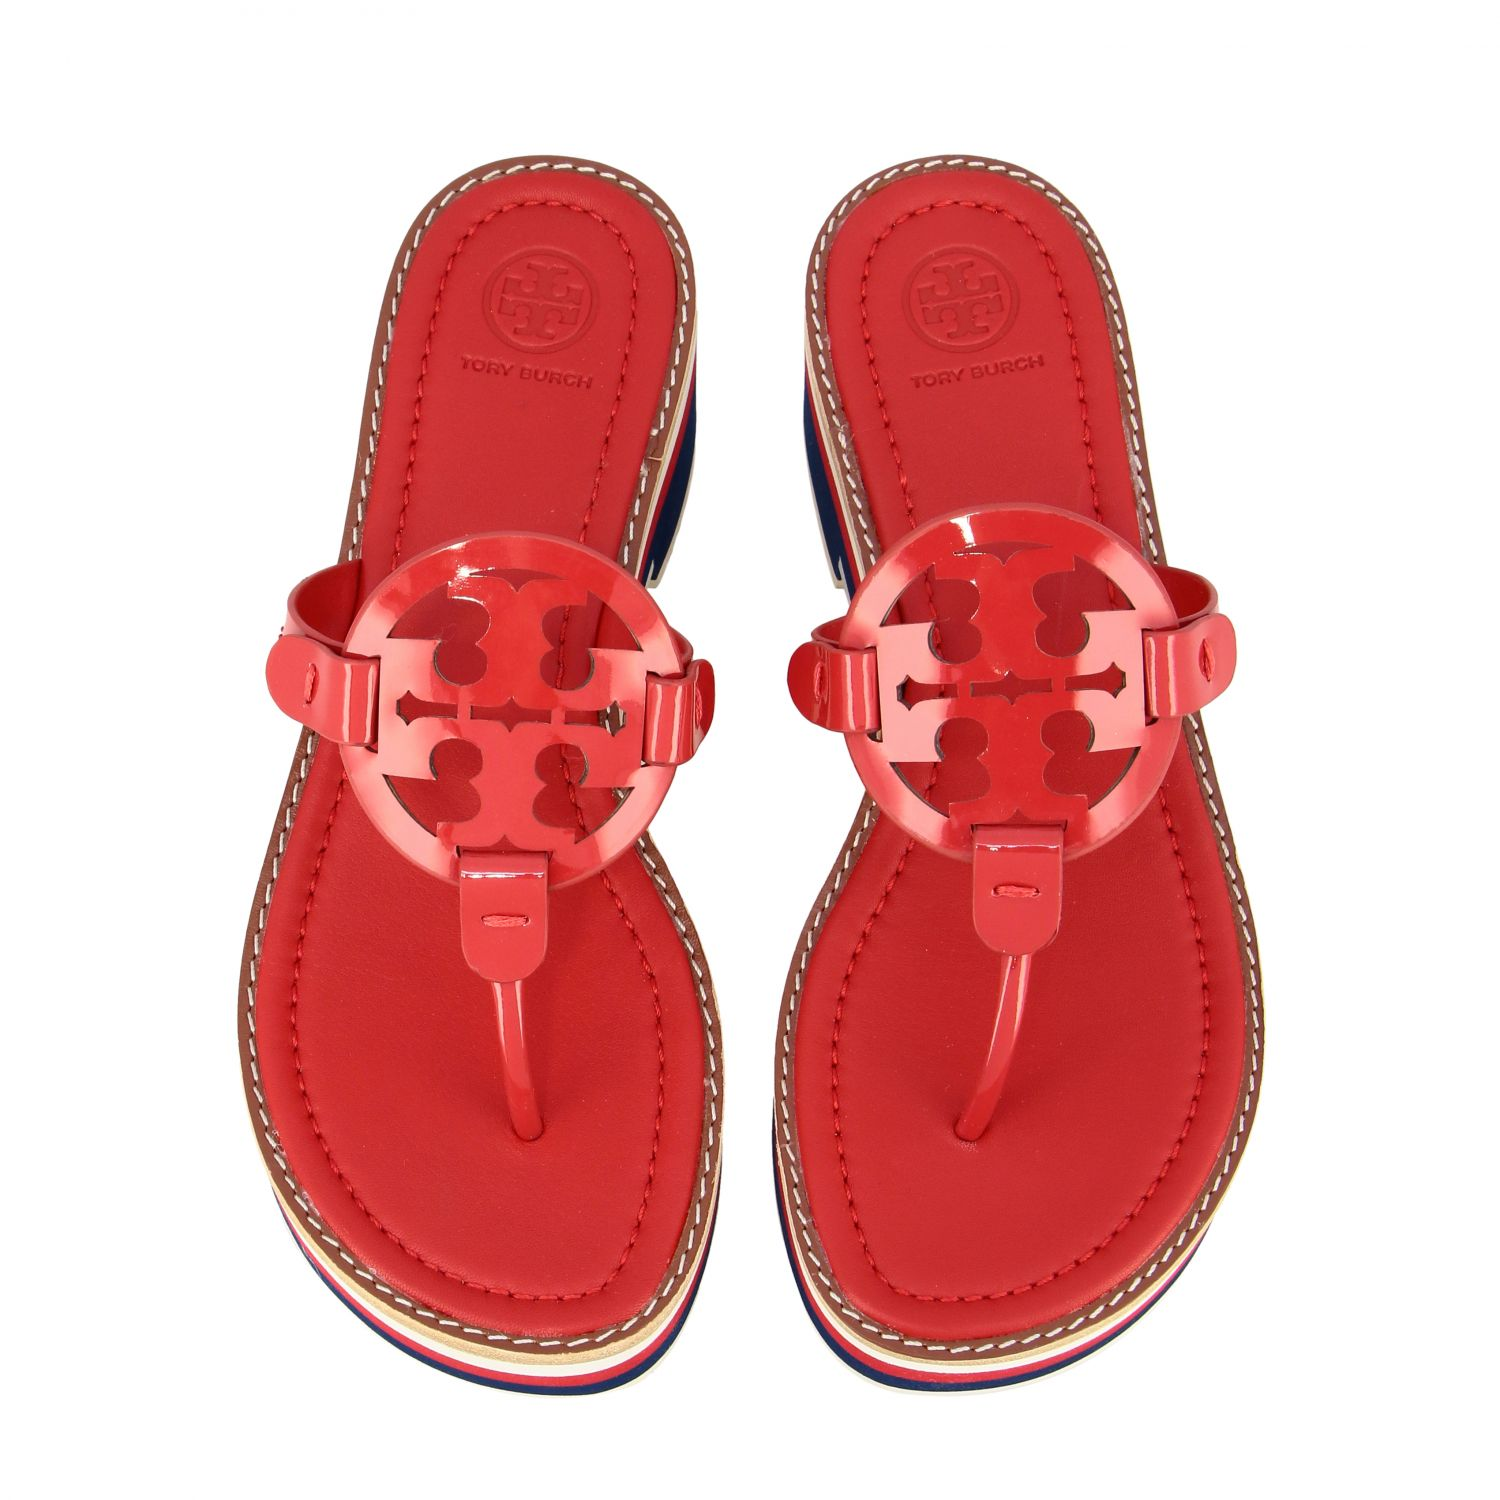 Chaussures femme Tory Burch rouge 3